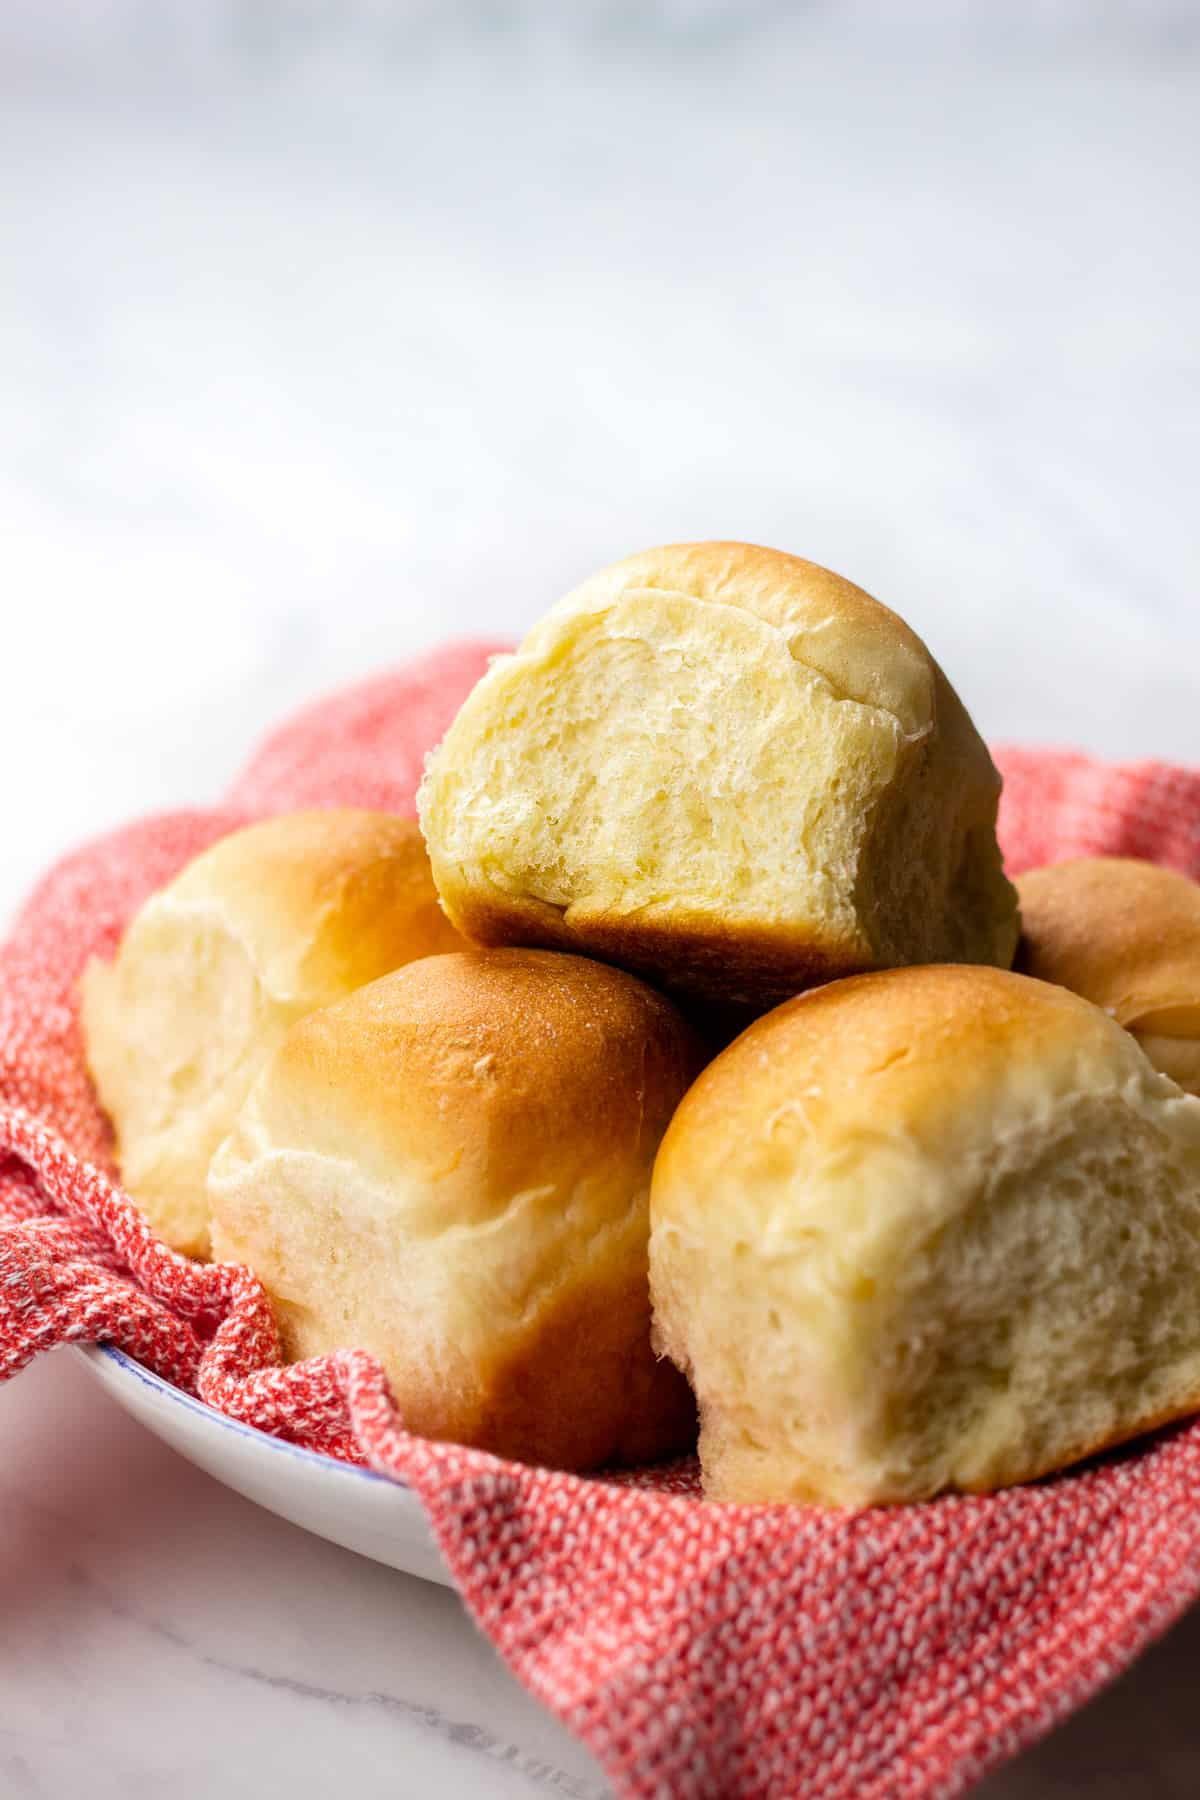 Dinner rolls on a red kitchen towel.